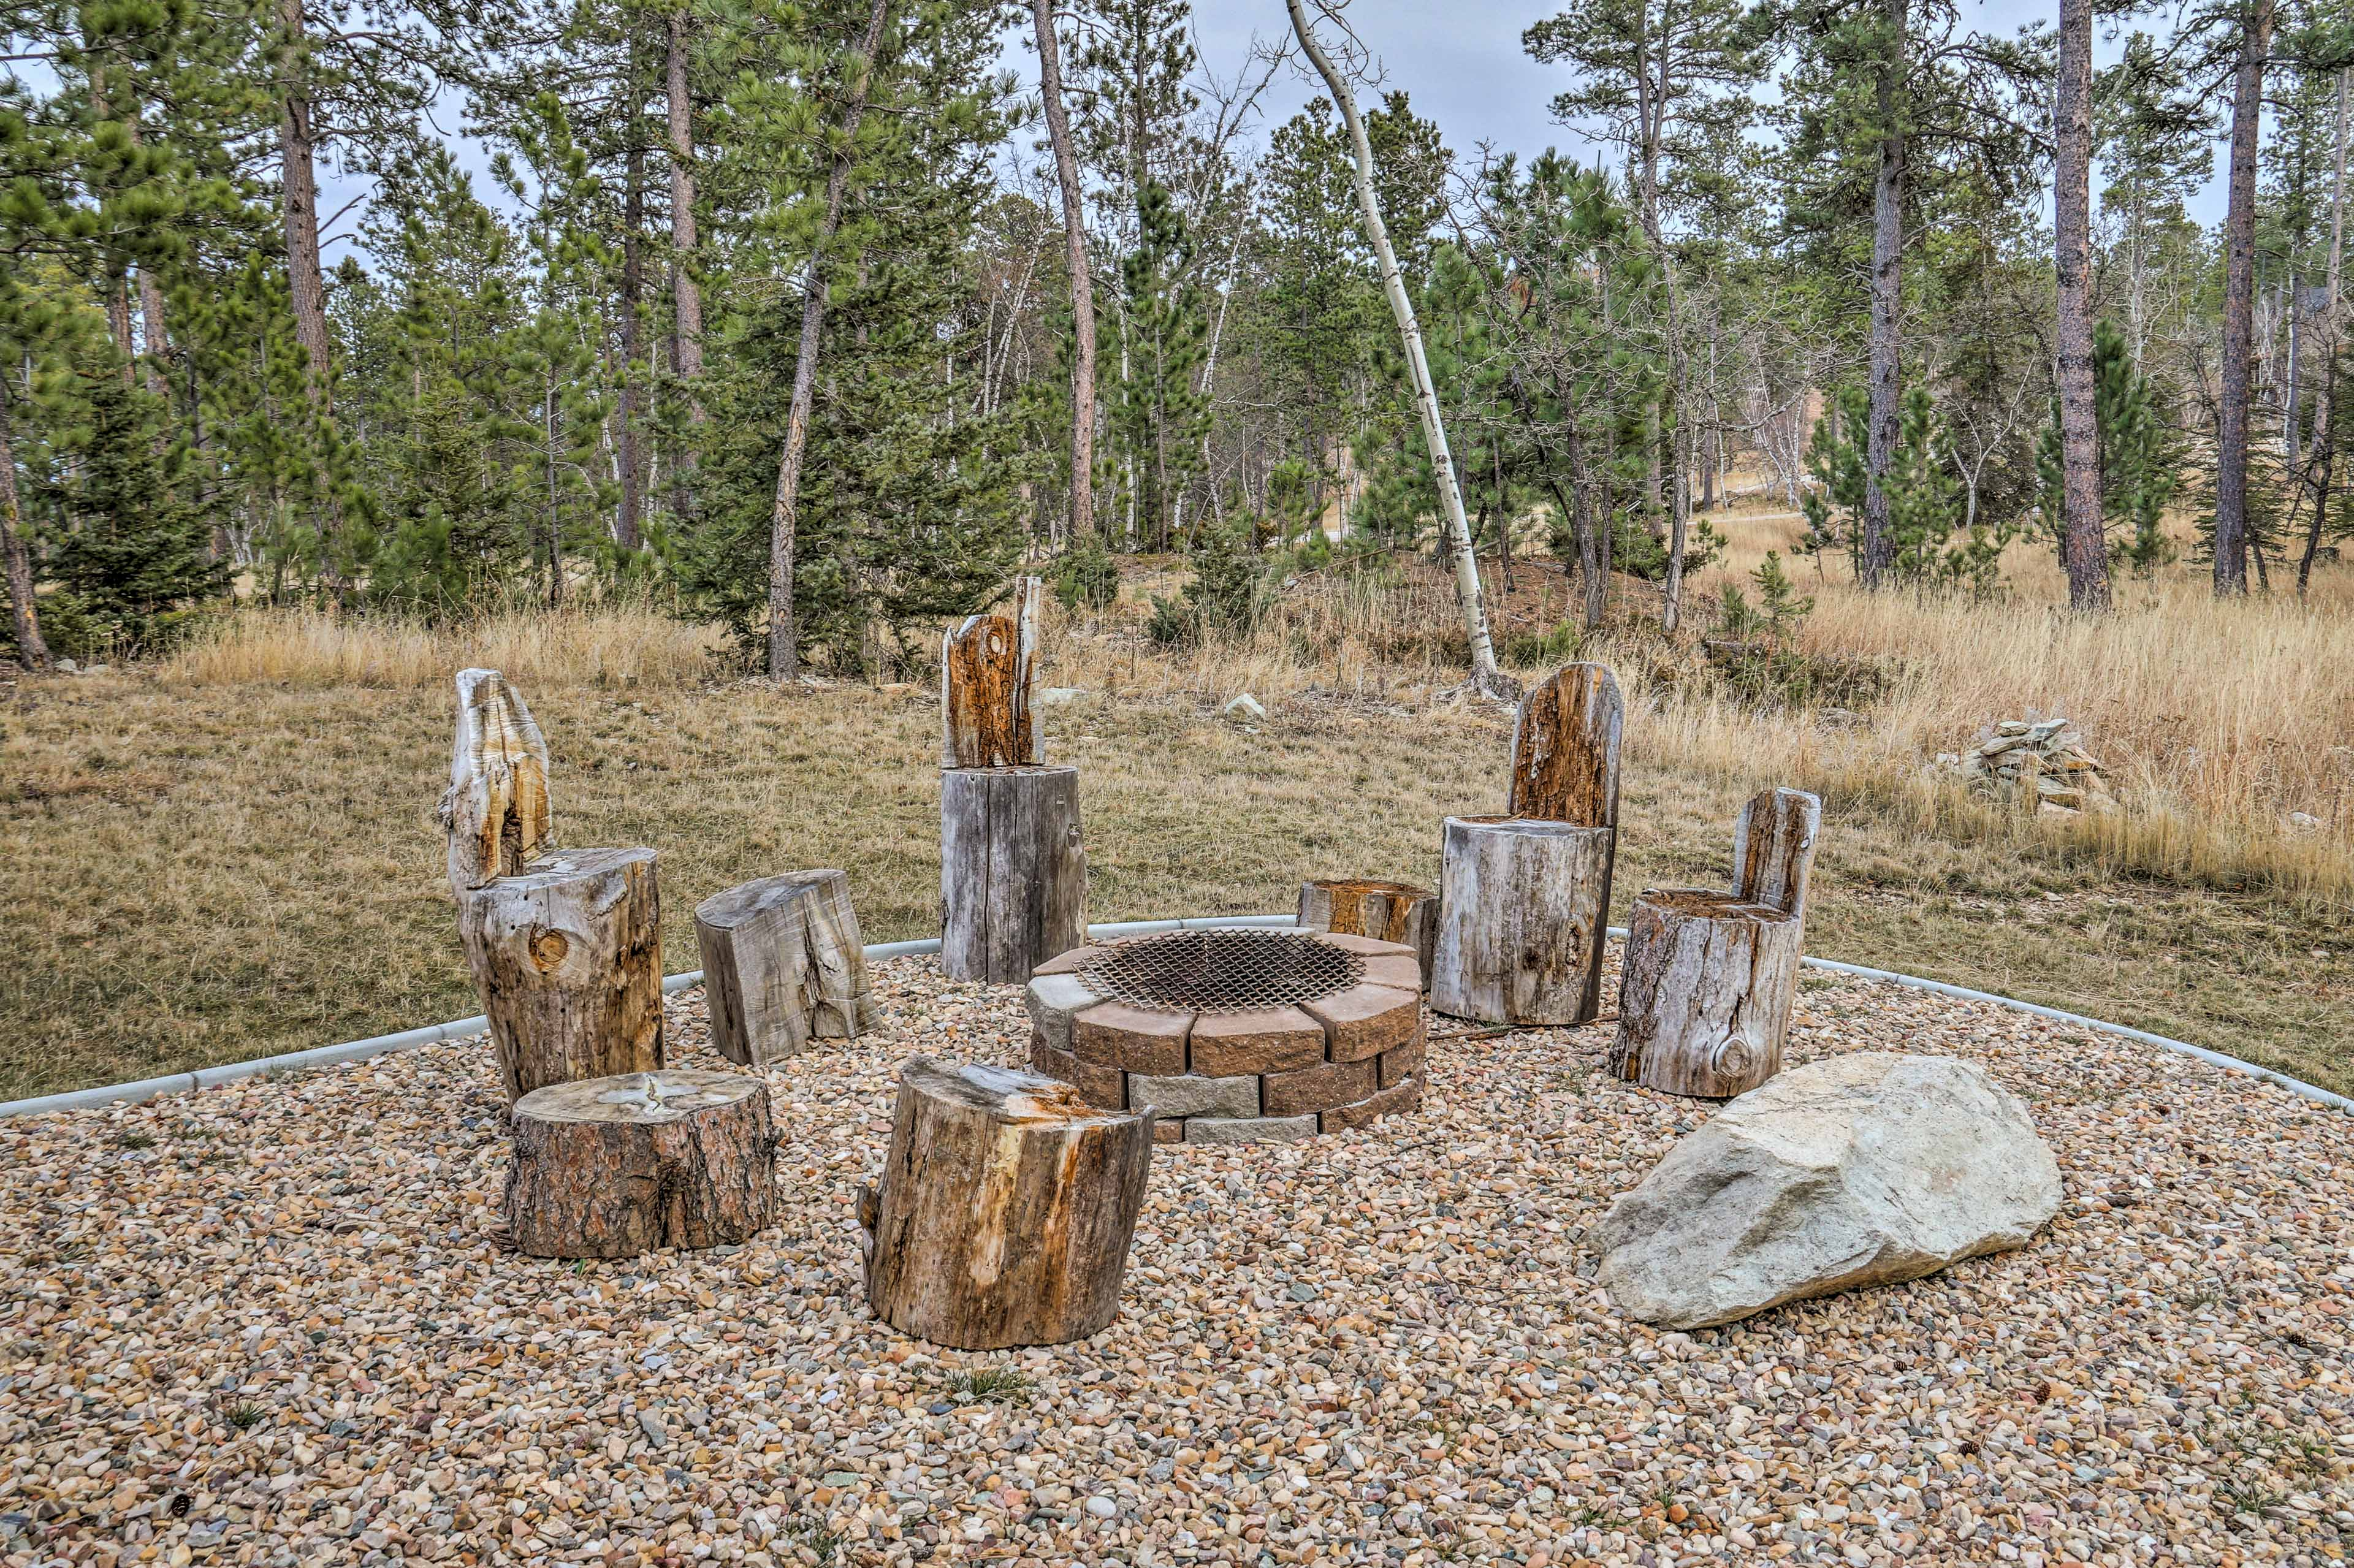 Stay warm around the wood-burning fire pit as you enjoy the great outdoors.